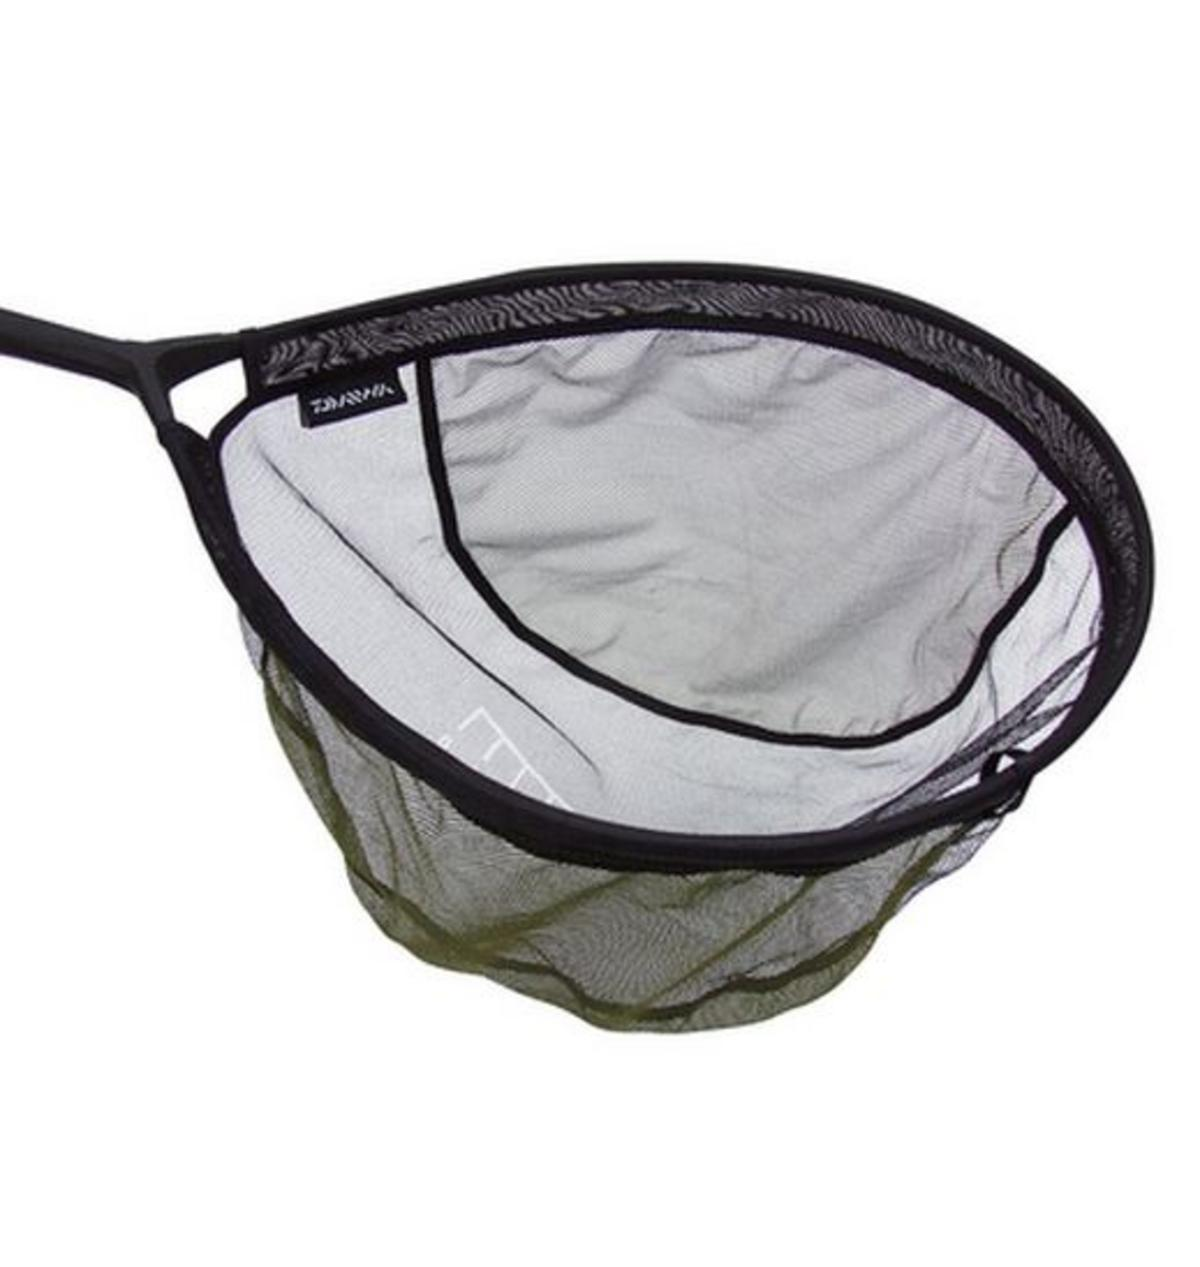 NEW DAIWA RIVER FISHING LANDING NET OVAL DRNOV1